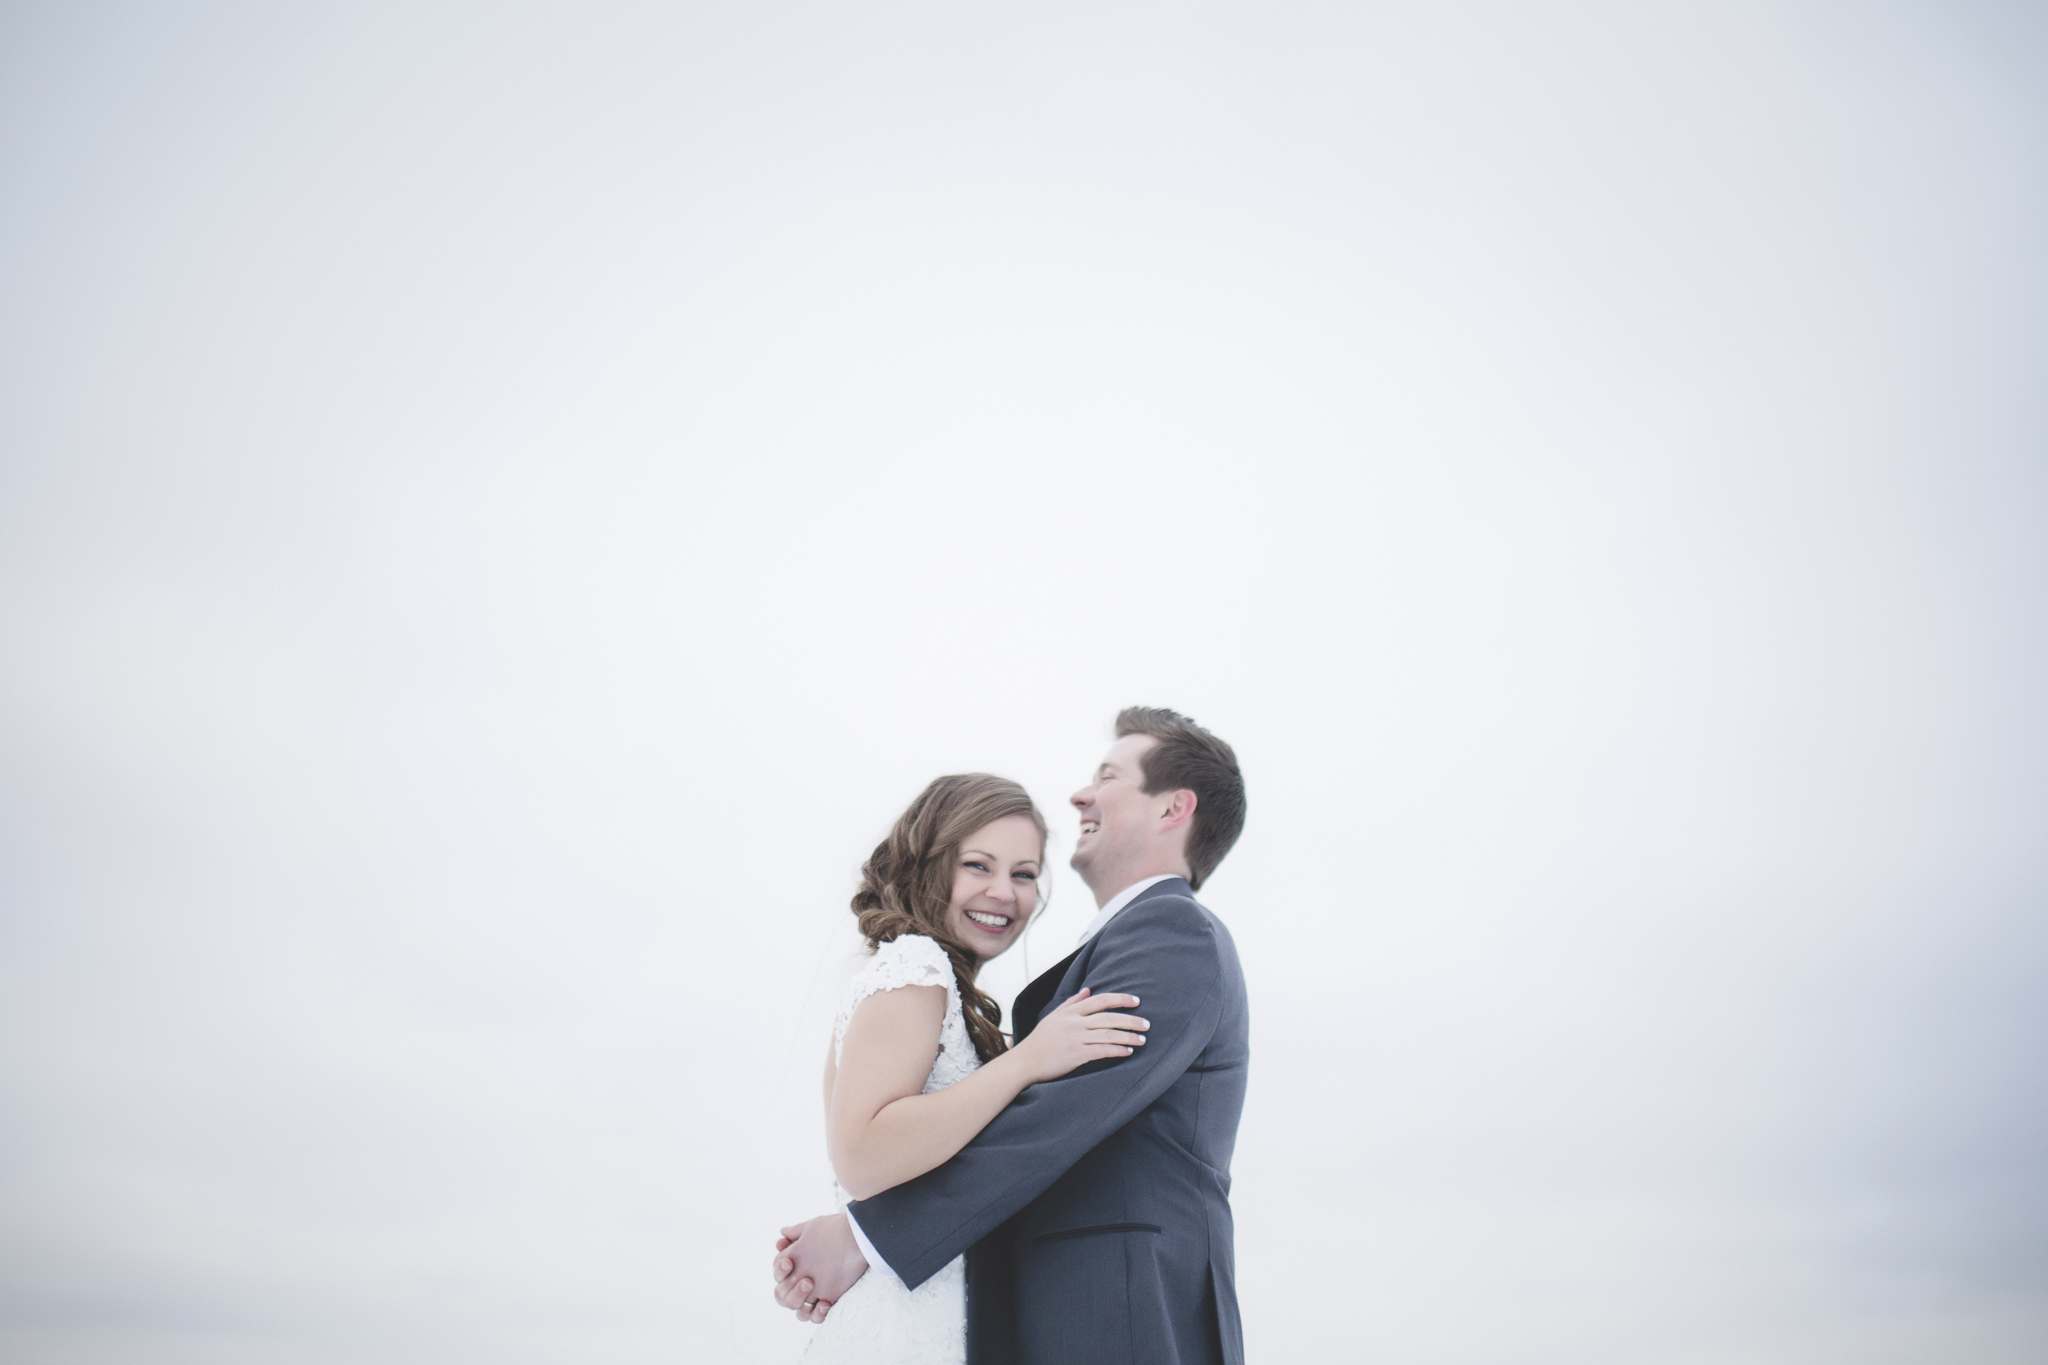 minneapolis winter wedding photography-27.jpg